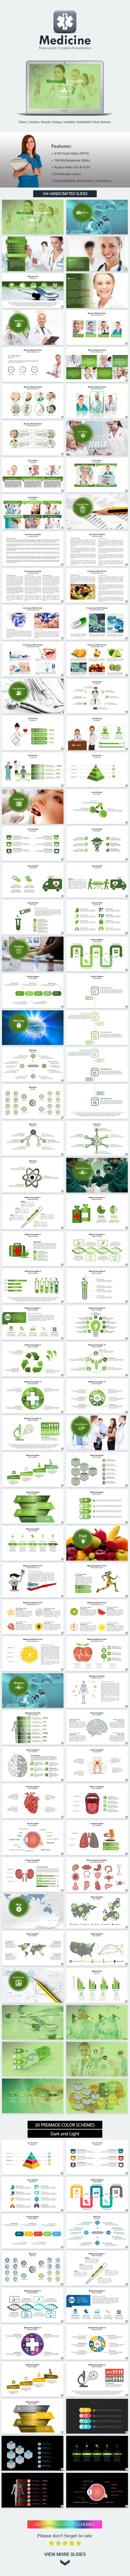 Medicine PowerPoint Presentation Template #design #slides Download: http://graphicriver.net/item/medicine-presentation-template/13593212?ref=ksioks